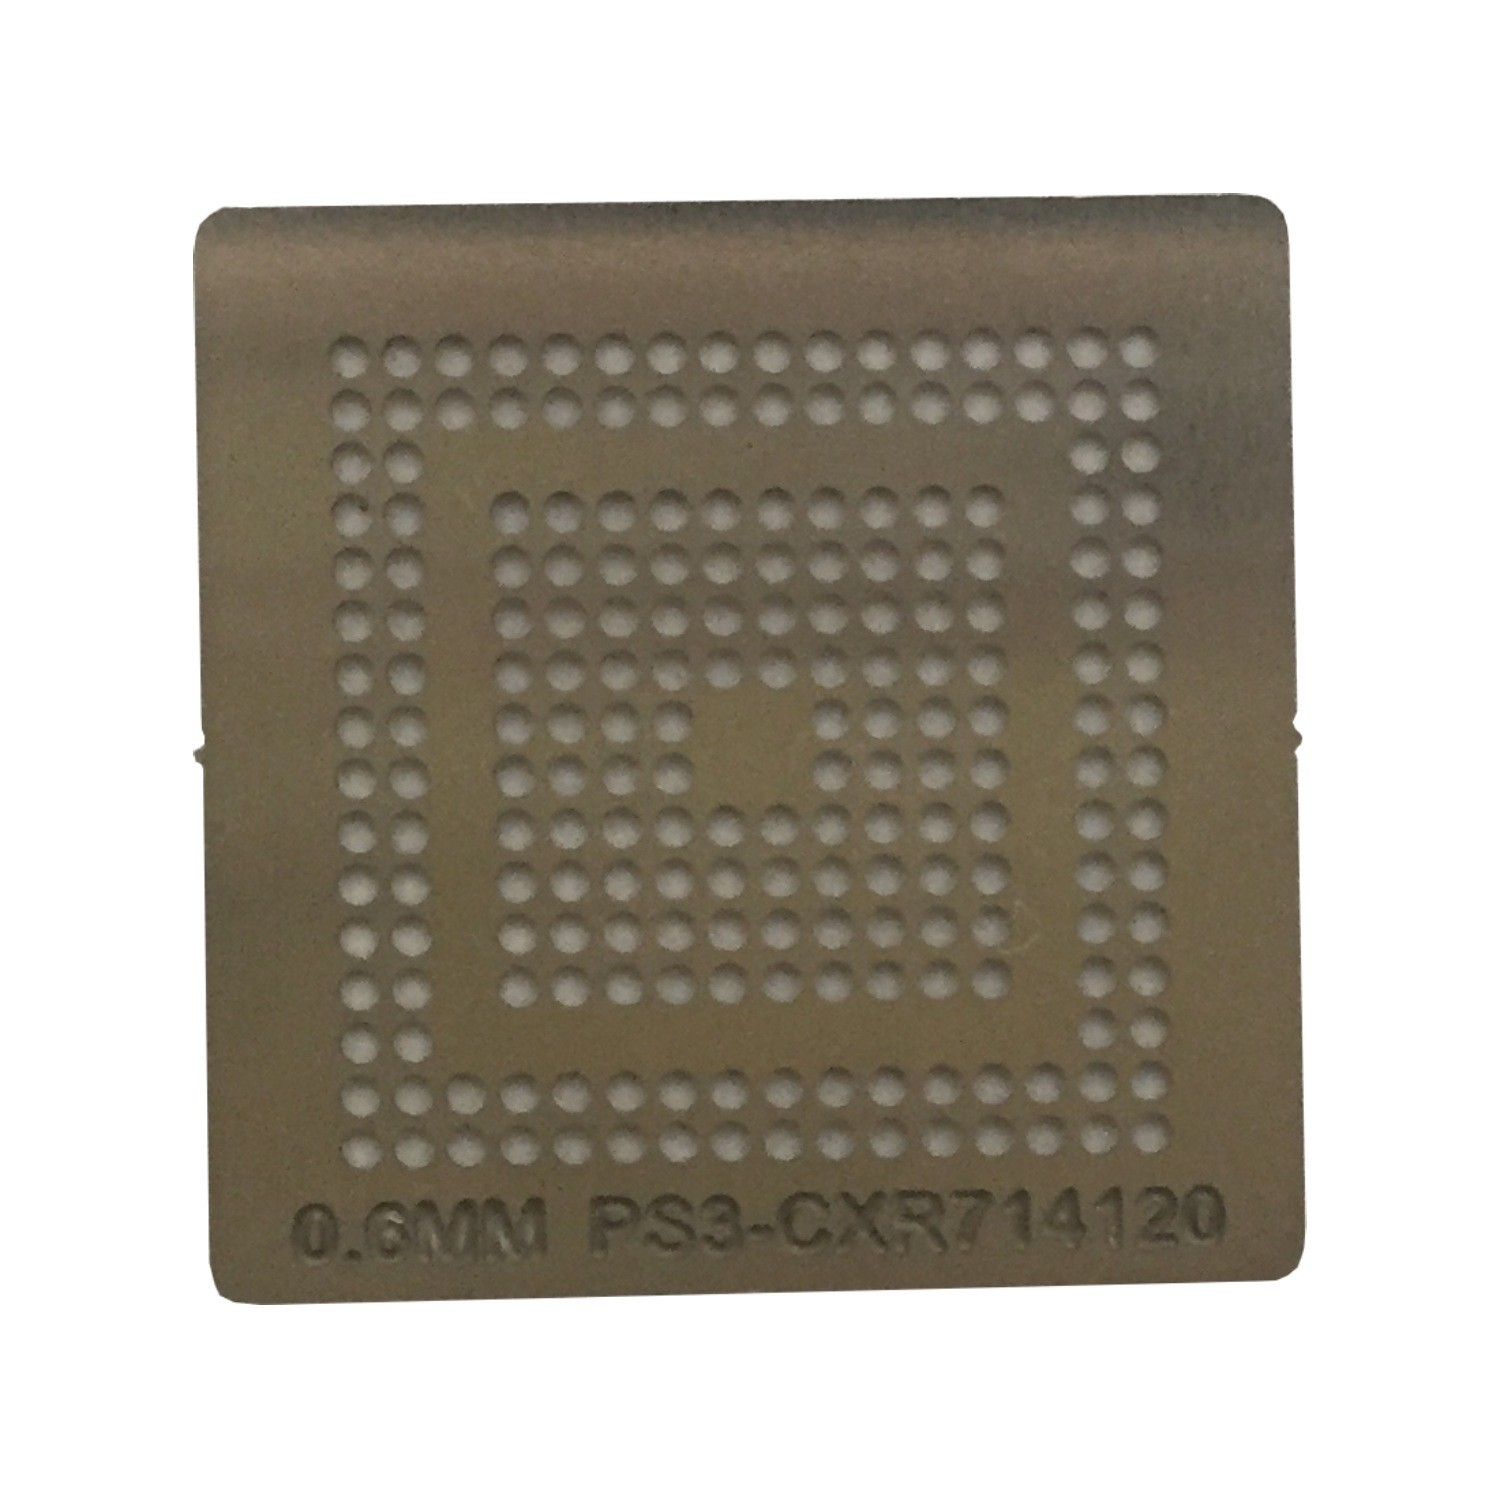 Stencil Ps3 Cxr714120 0,6mm Calor Direto Bga Reballing - GM14